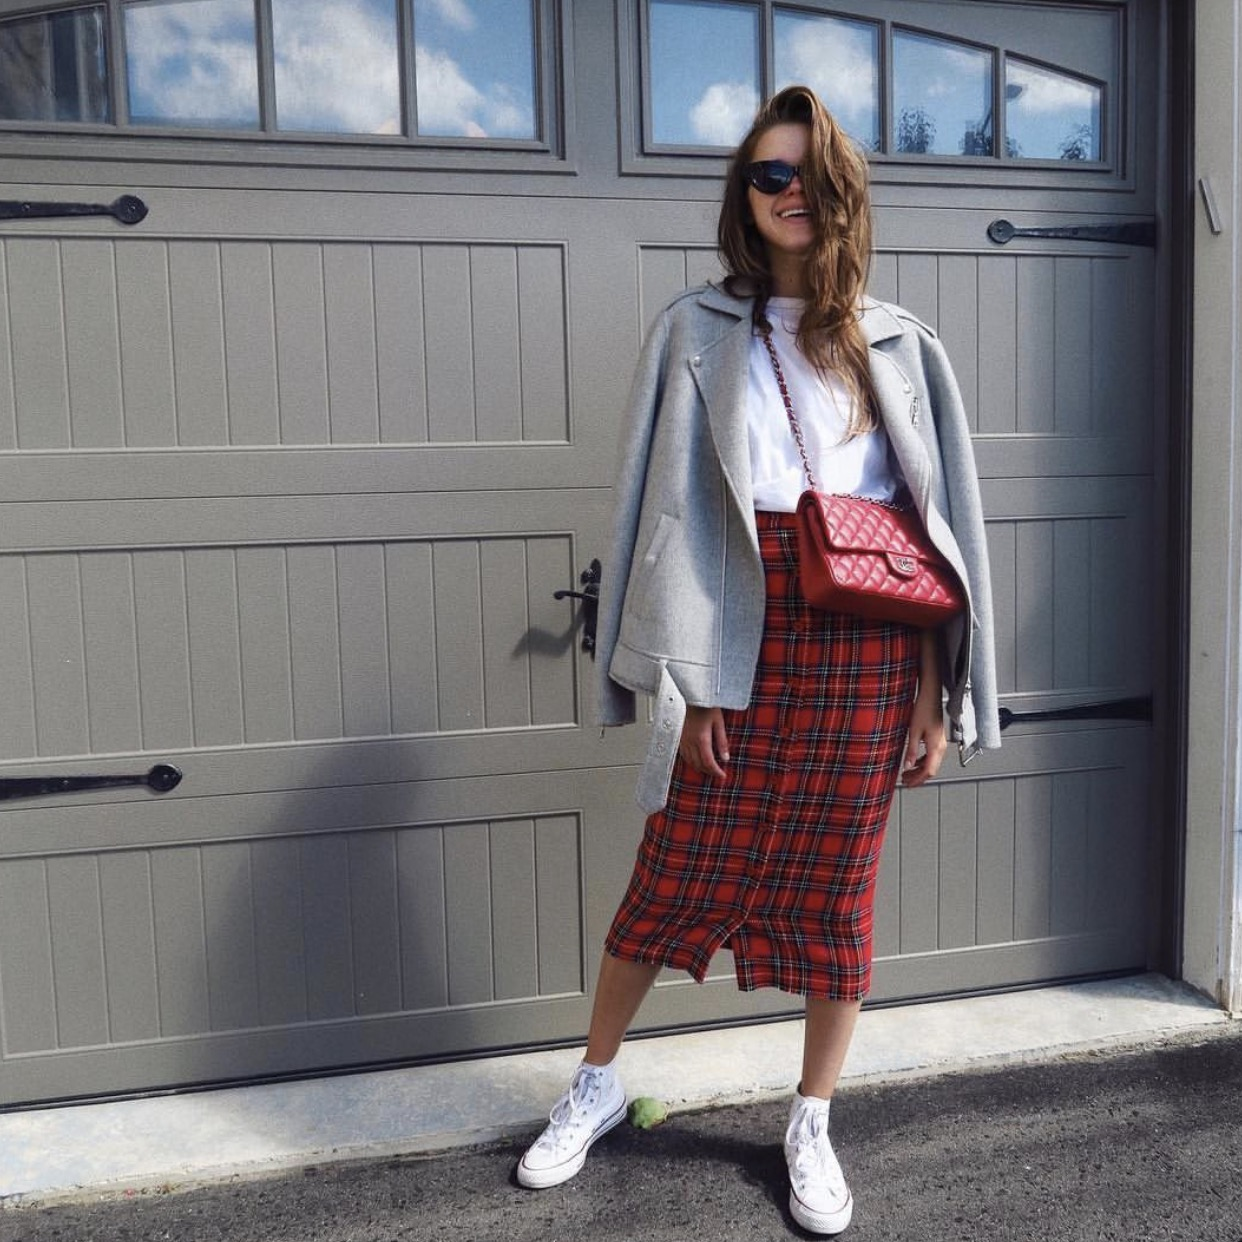 Tshirt: TopShop  HERE | Skirt: Vintage, similar  HERE | Jacket: Theory, similar  HERE |Shoes: Converse  HERE | Sunglasses: Vintage, similar  HERE